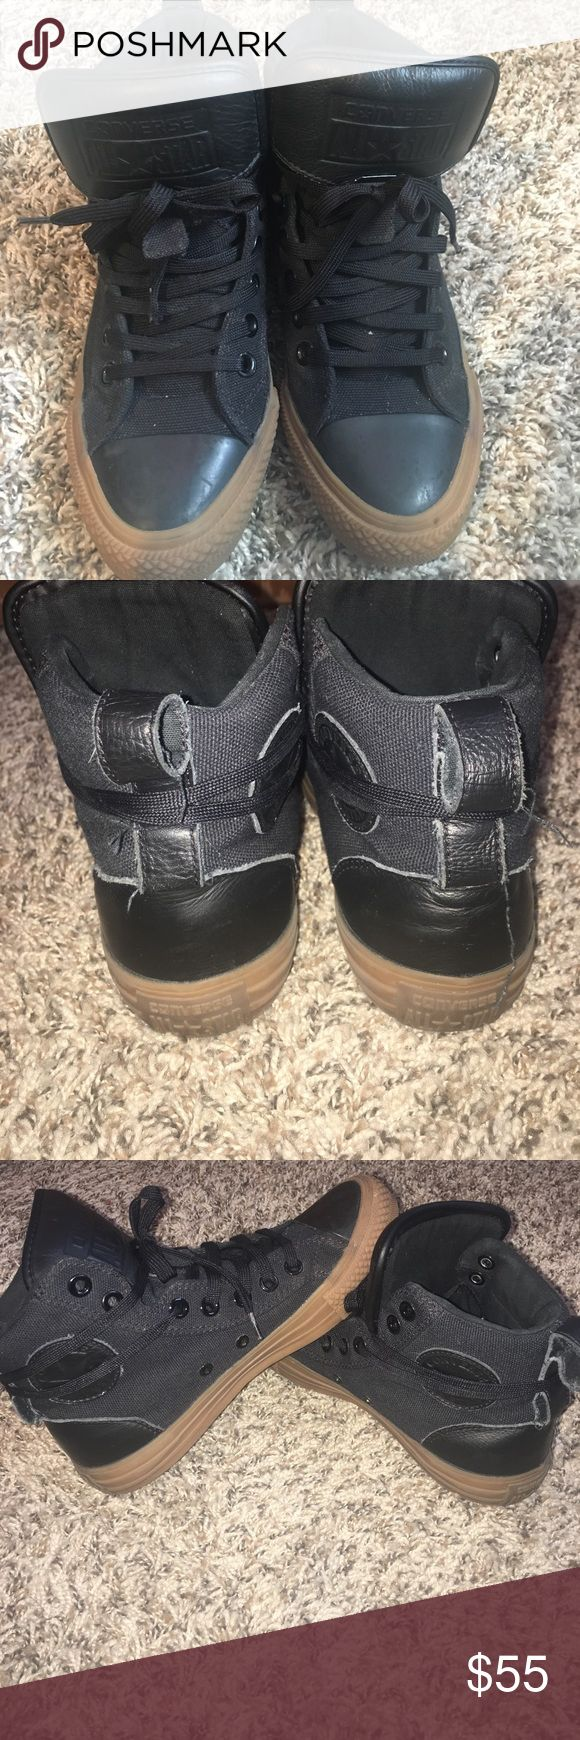 Converse High top Unisex gum bottom high tops. Gum bottom in perfect condition. Like new Shoes Sneakers